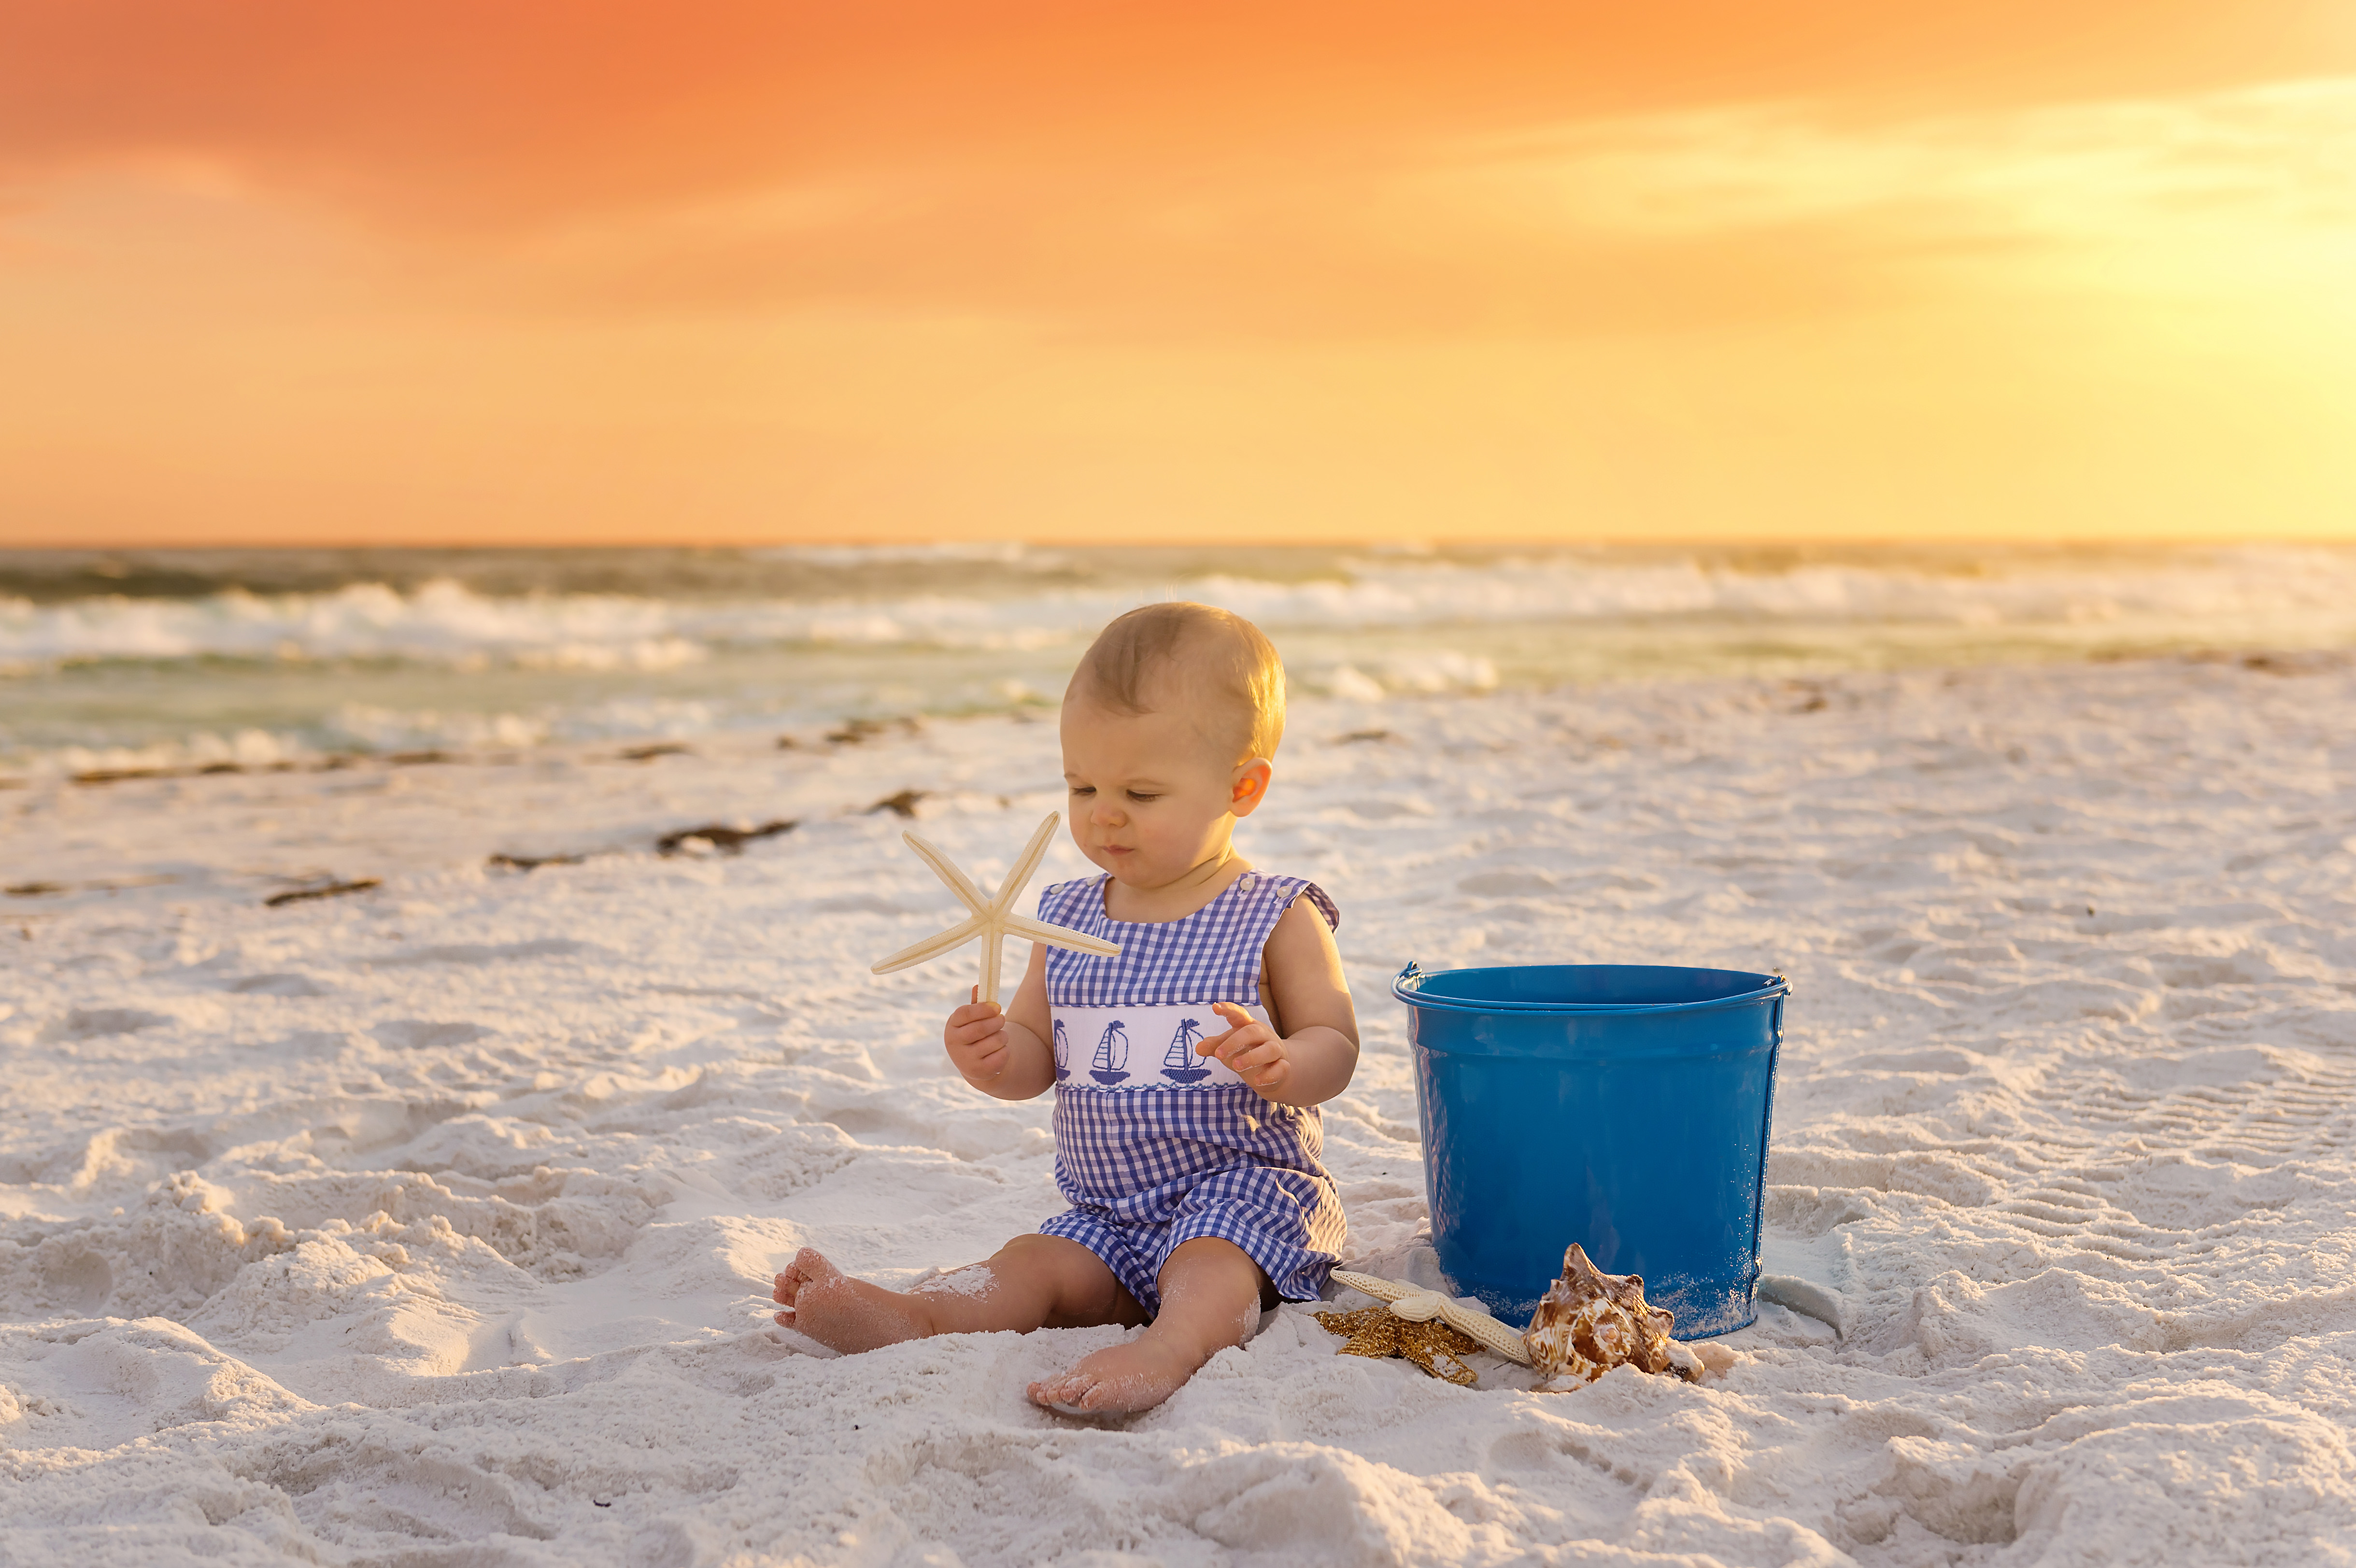 Destin_Florida_Beach_Photographer_0104